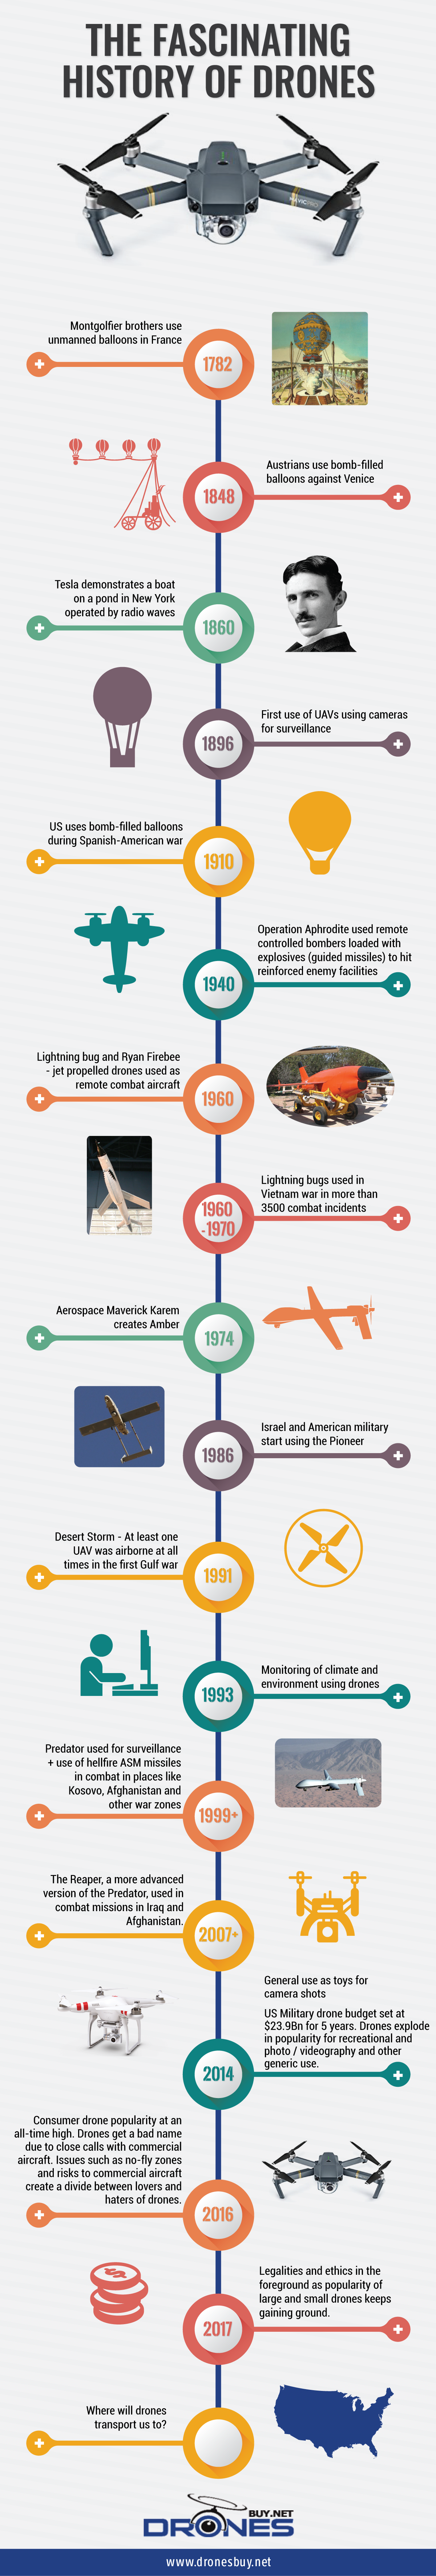 History of drones infographic